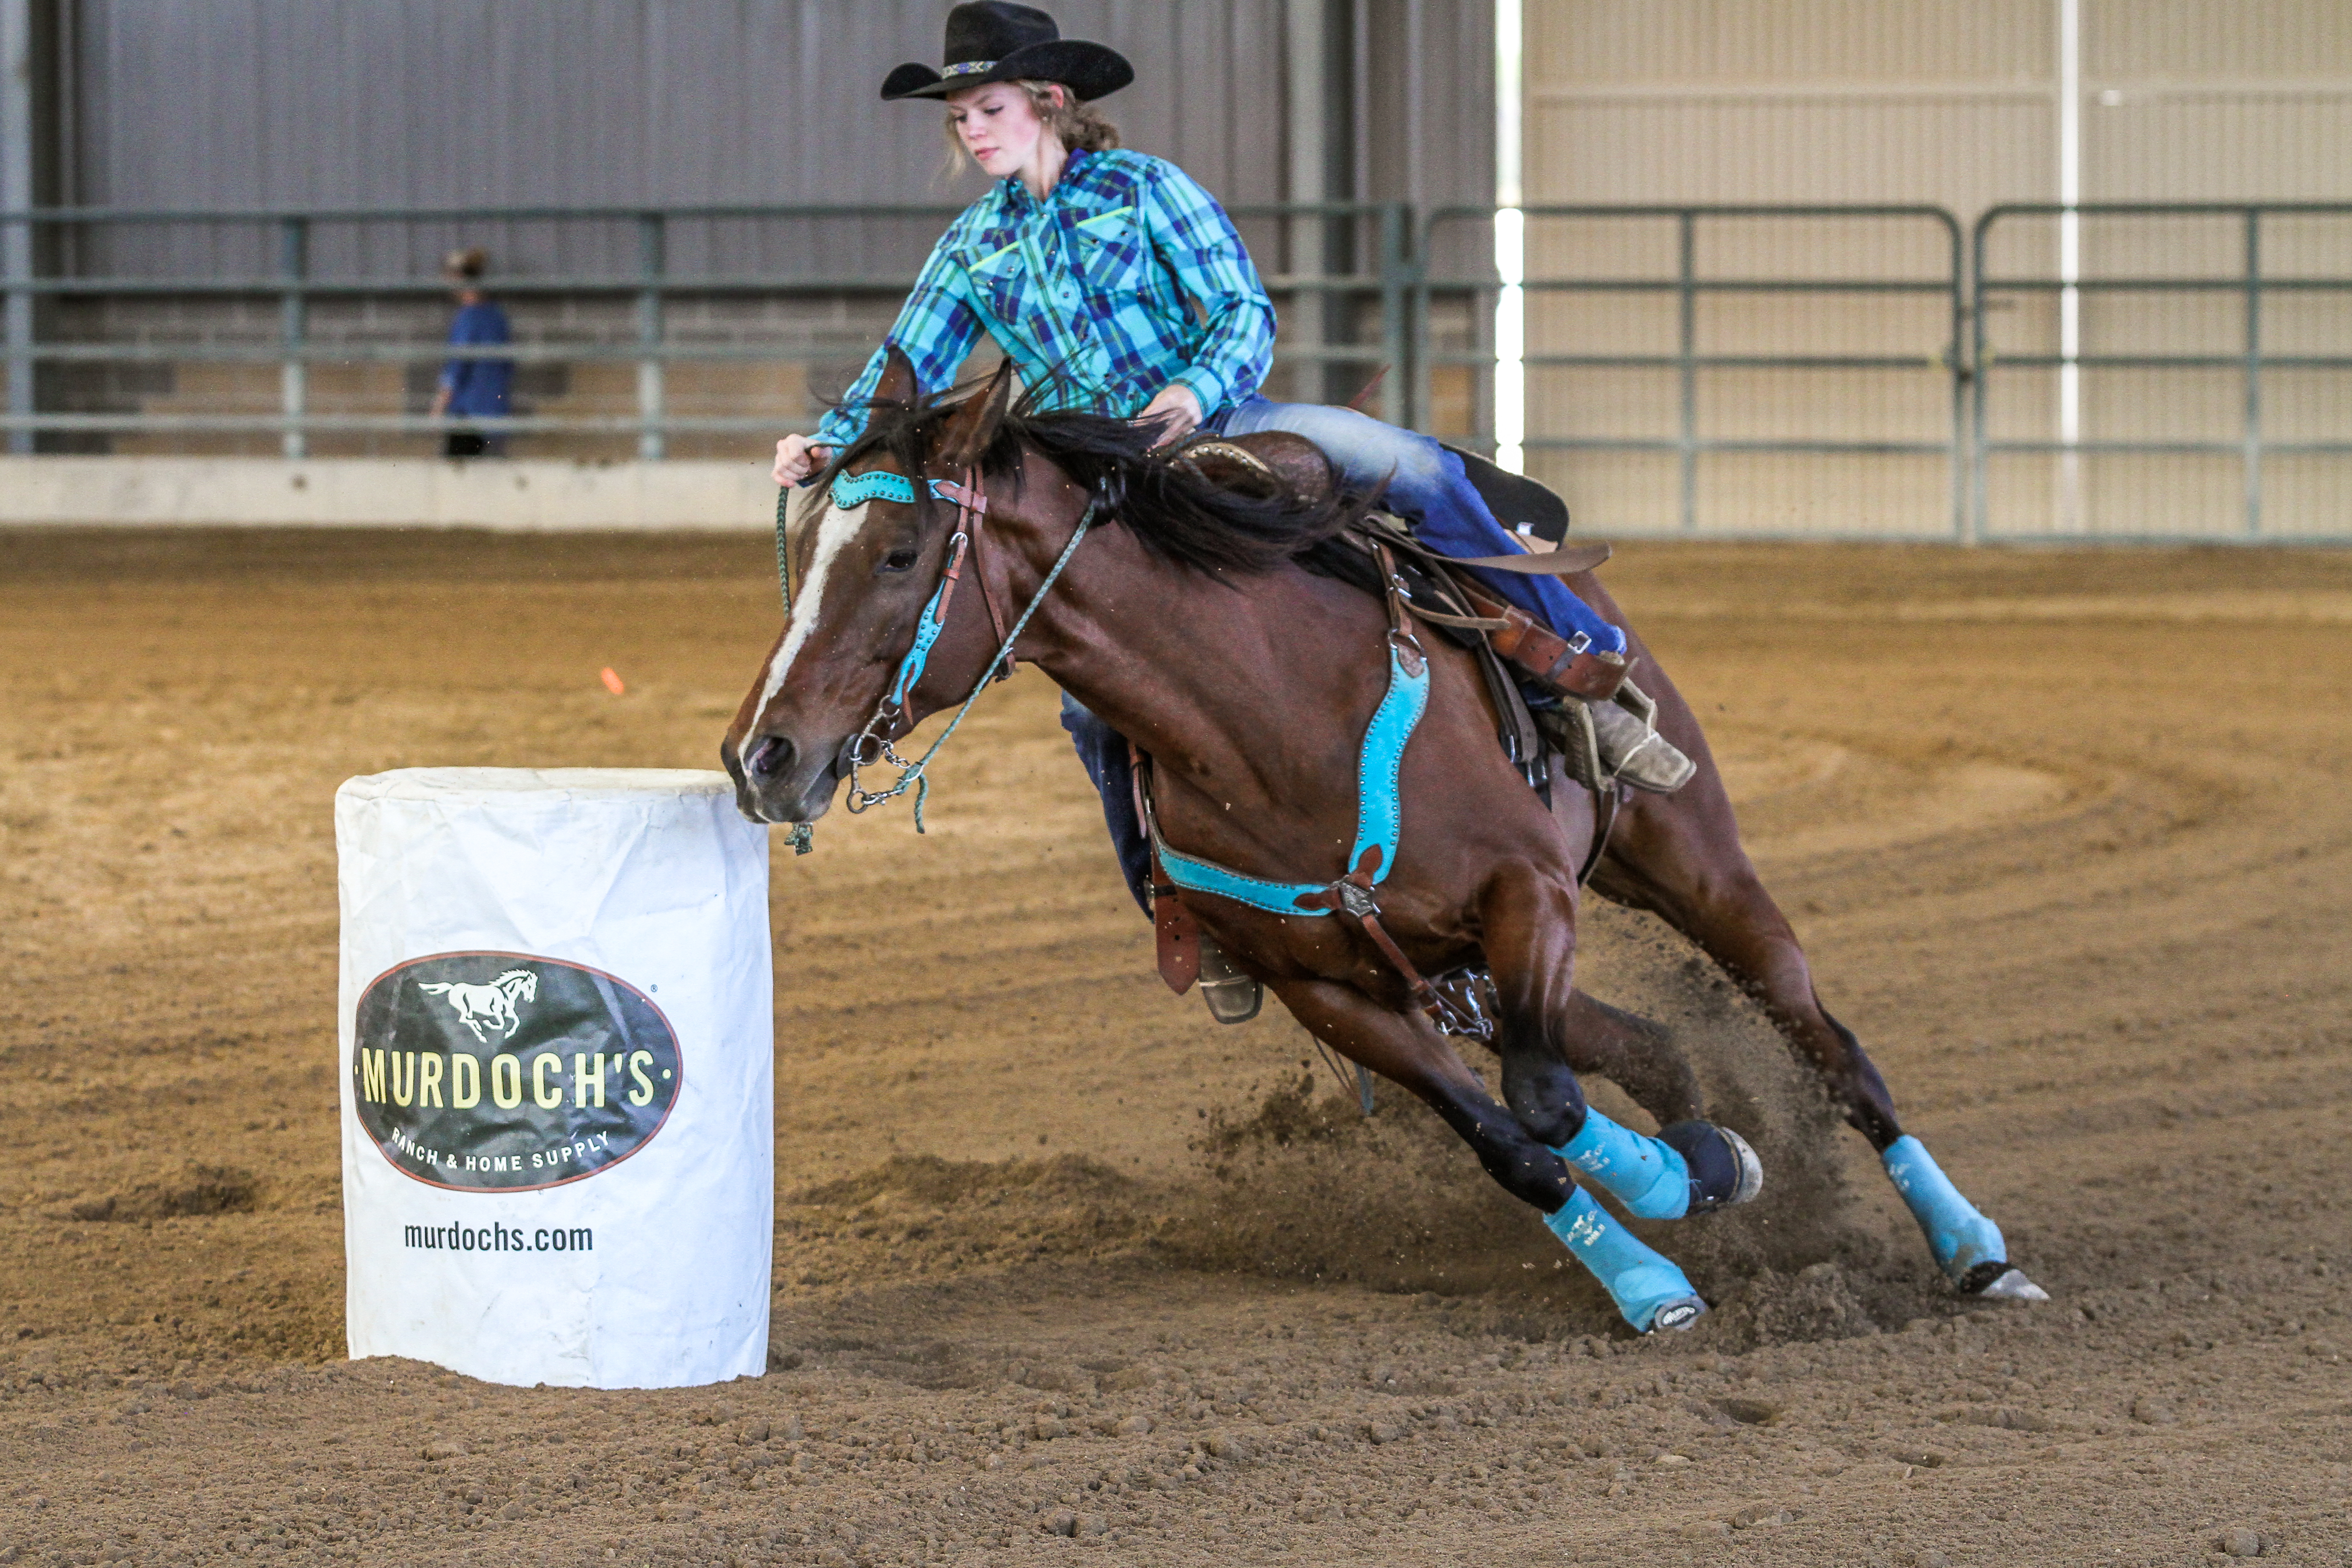 One of Brittnee's students competing at a barrel event